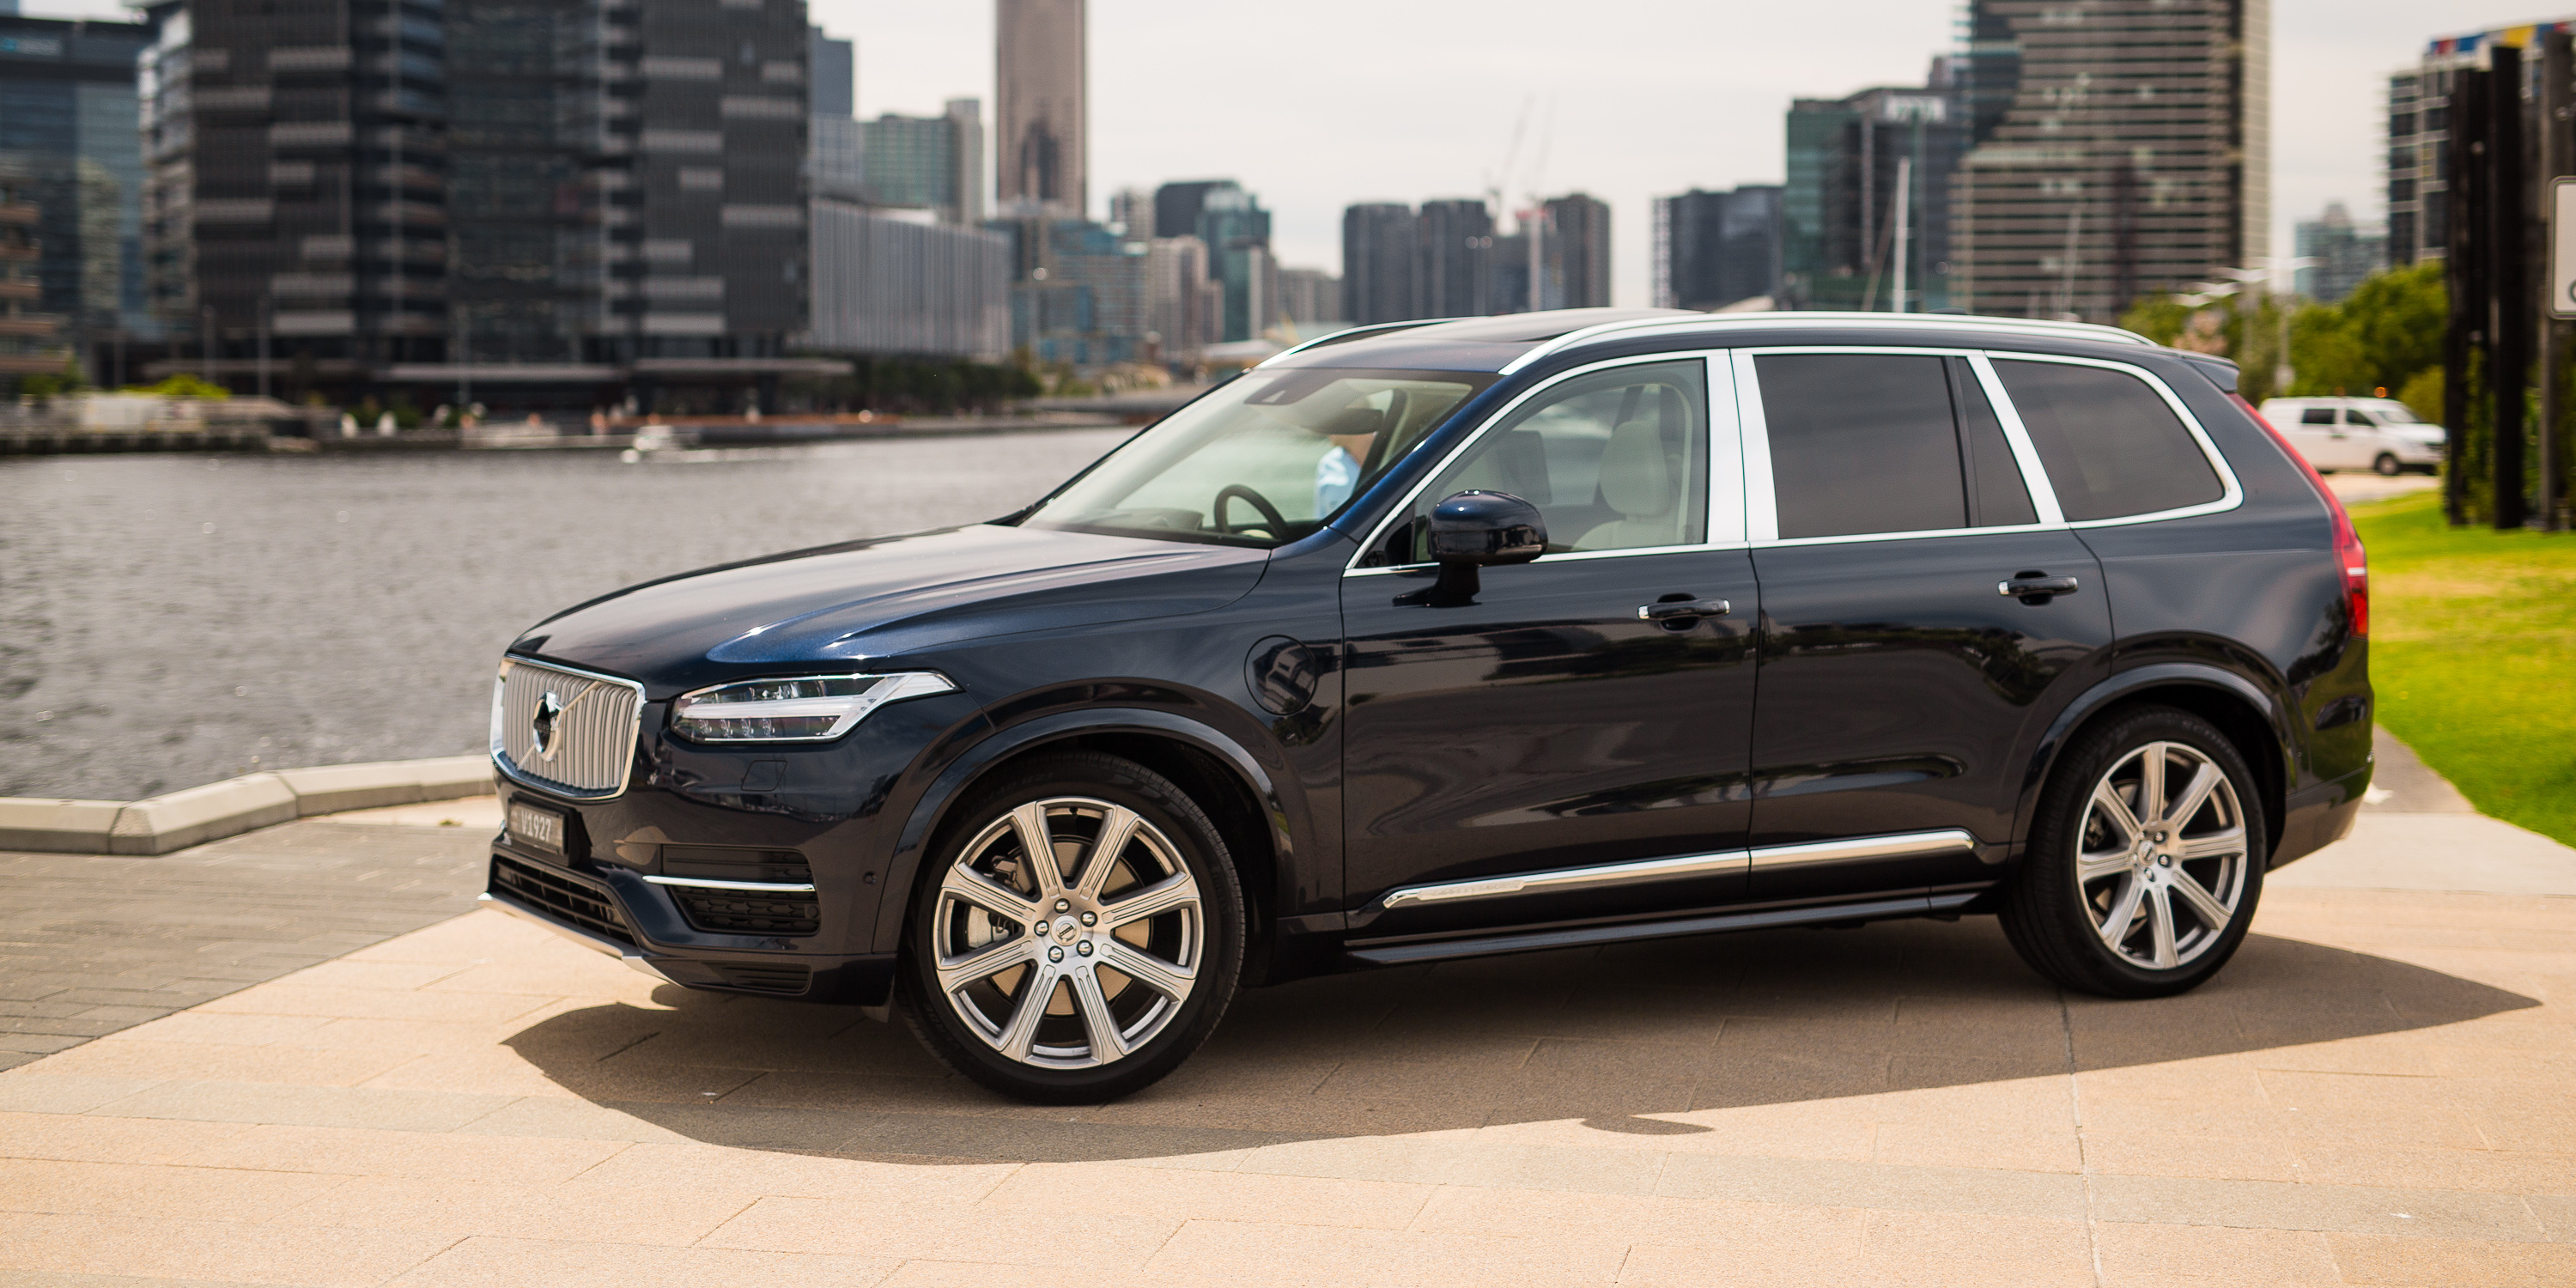 Volvo XC90 photos  Photo Gallery Page #2 CarsBasecom